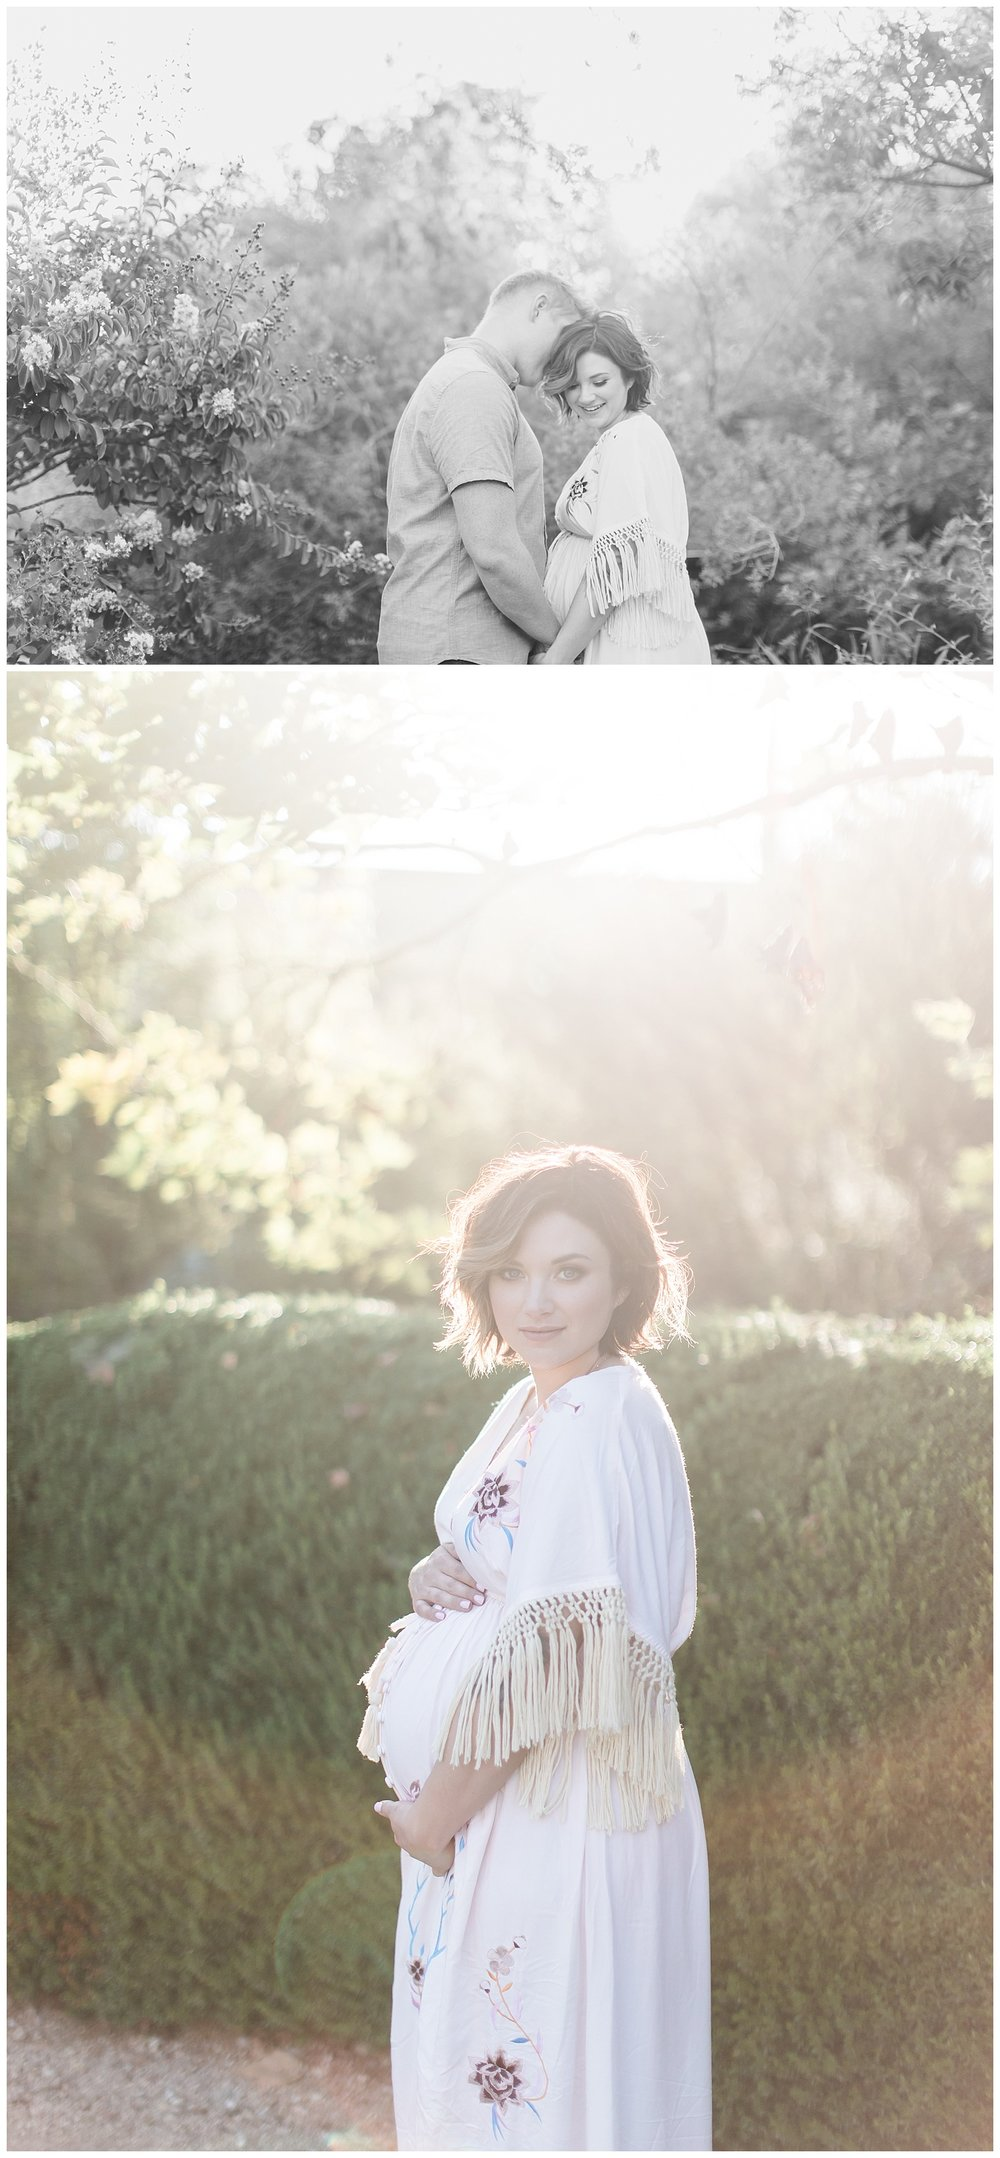 Ashley Burns Photography | Wedding, Branding, and Lifestyle Photographer